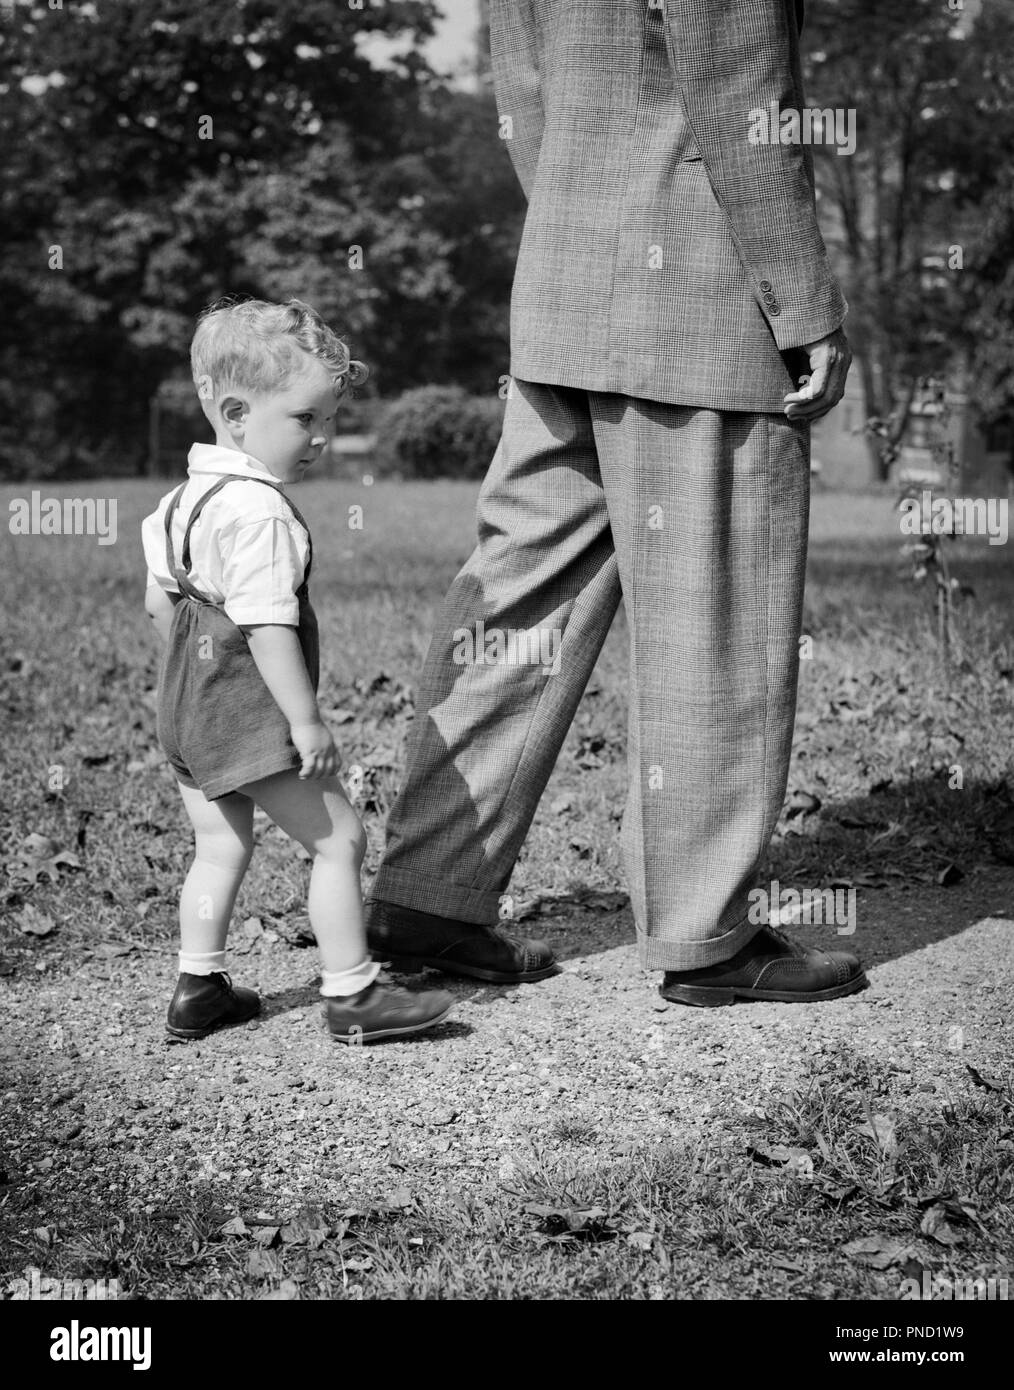 1940s BOY FOLLOWING BEHIND MAN WALKING IN HIS FATHER'S FOOTSTEPS - j10745 HAR001 HARS COPY SPACE FULL-LENGTH PERSONS INSPIRATION MALES FATHERS B&W SUCCESS MENTOR HIS STYLES DADS LEADERSHIP PROGRESS FATHER AND SON DIRECTION PRIDE REAR VIEW FOLLOWING GENERATION FATHER'S CONNECTION CONCEPTUAL EXAMPLE FOLLOW FOOTSTEPS LEAD LEGACY STYLISH BABY BOY BACK VIEW FASHIONS GROWTH JUVENILES MID-ADULT MID-ADULT MAN TOGETHERNESS BLACK AND WHITE HAR001 OLD FASHIONED - Stock Image